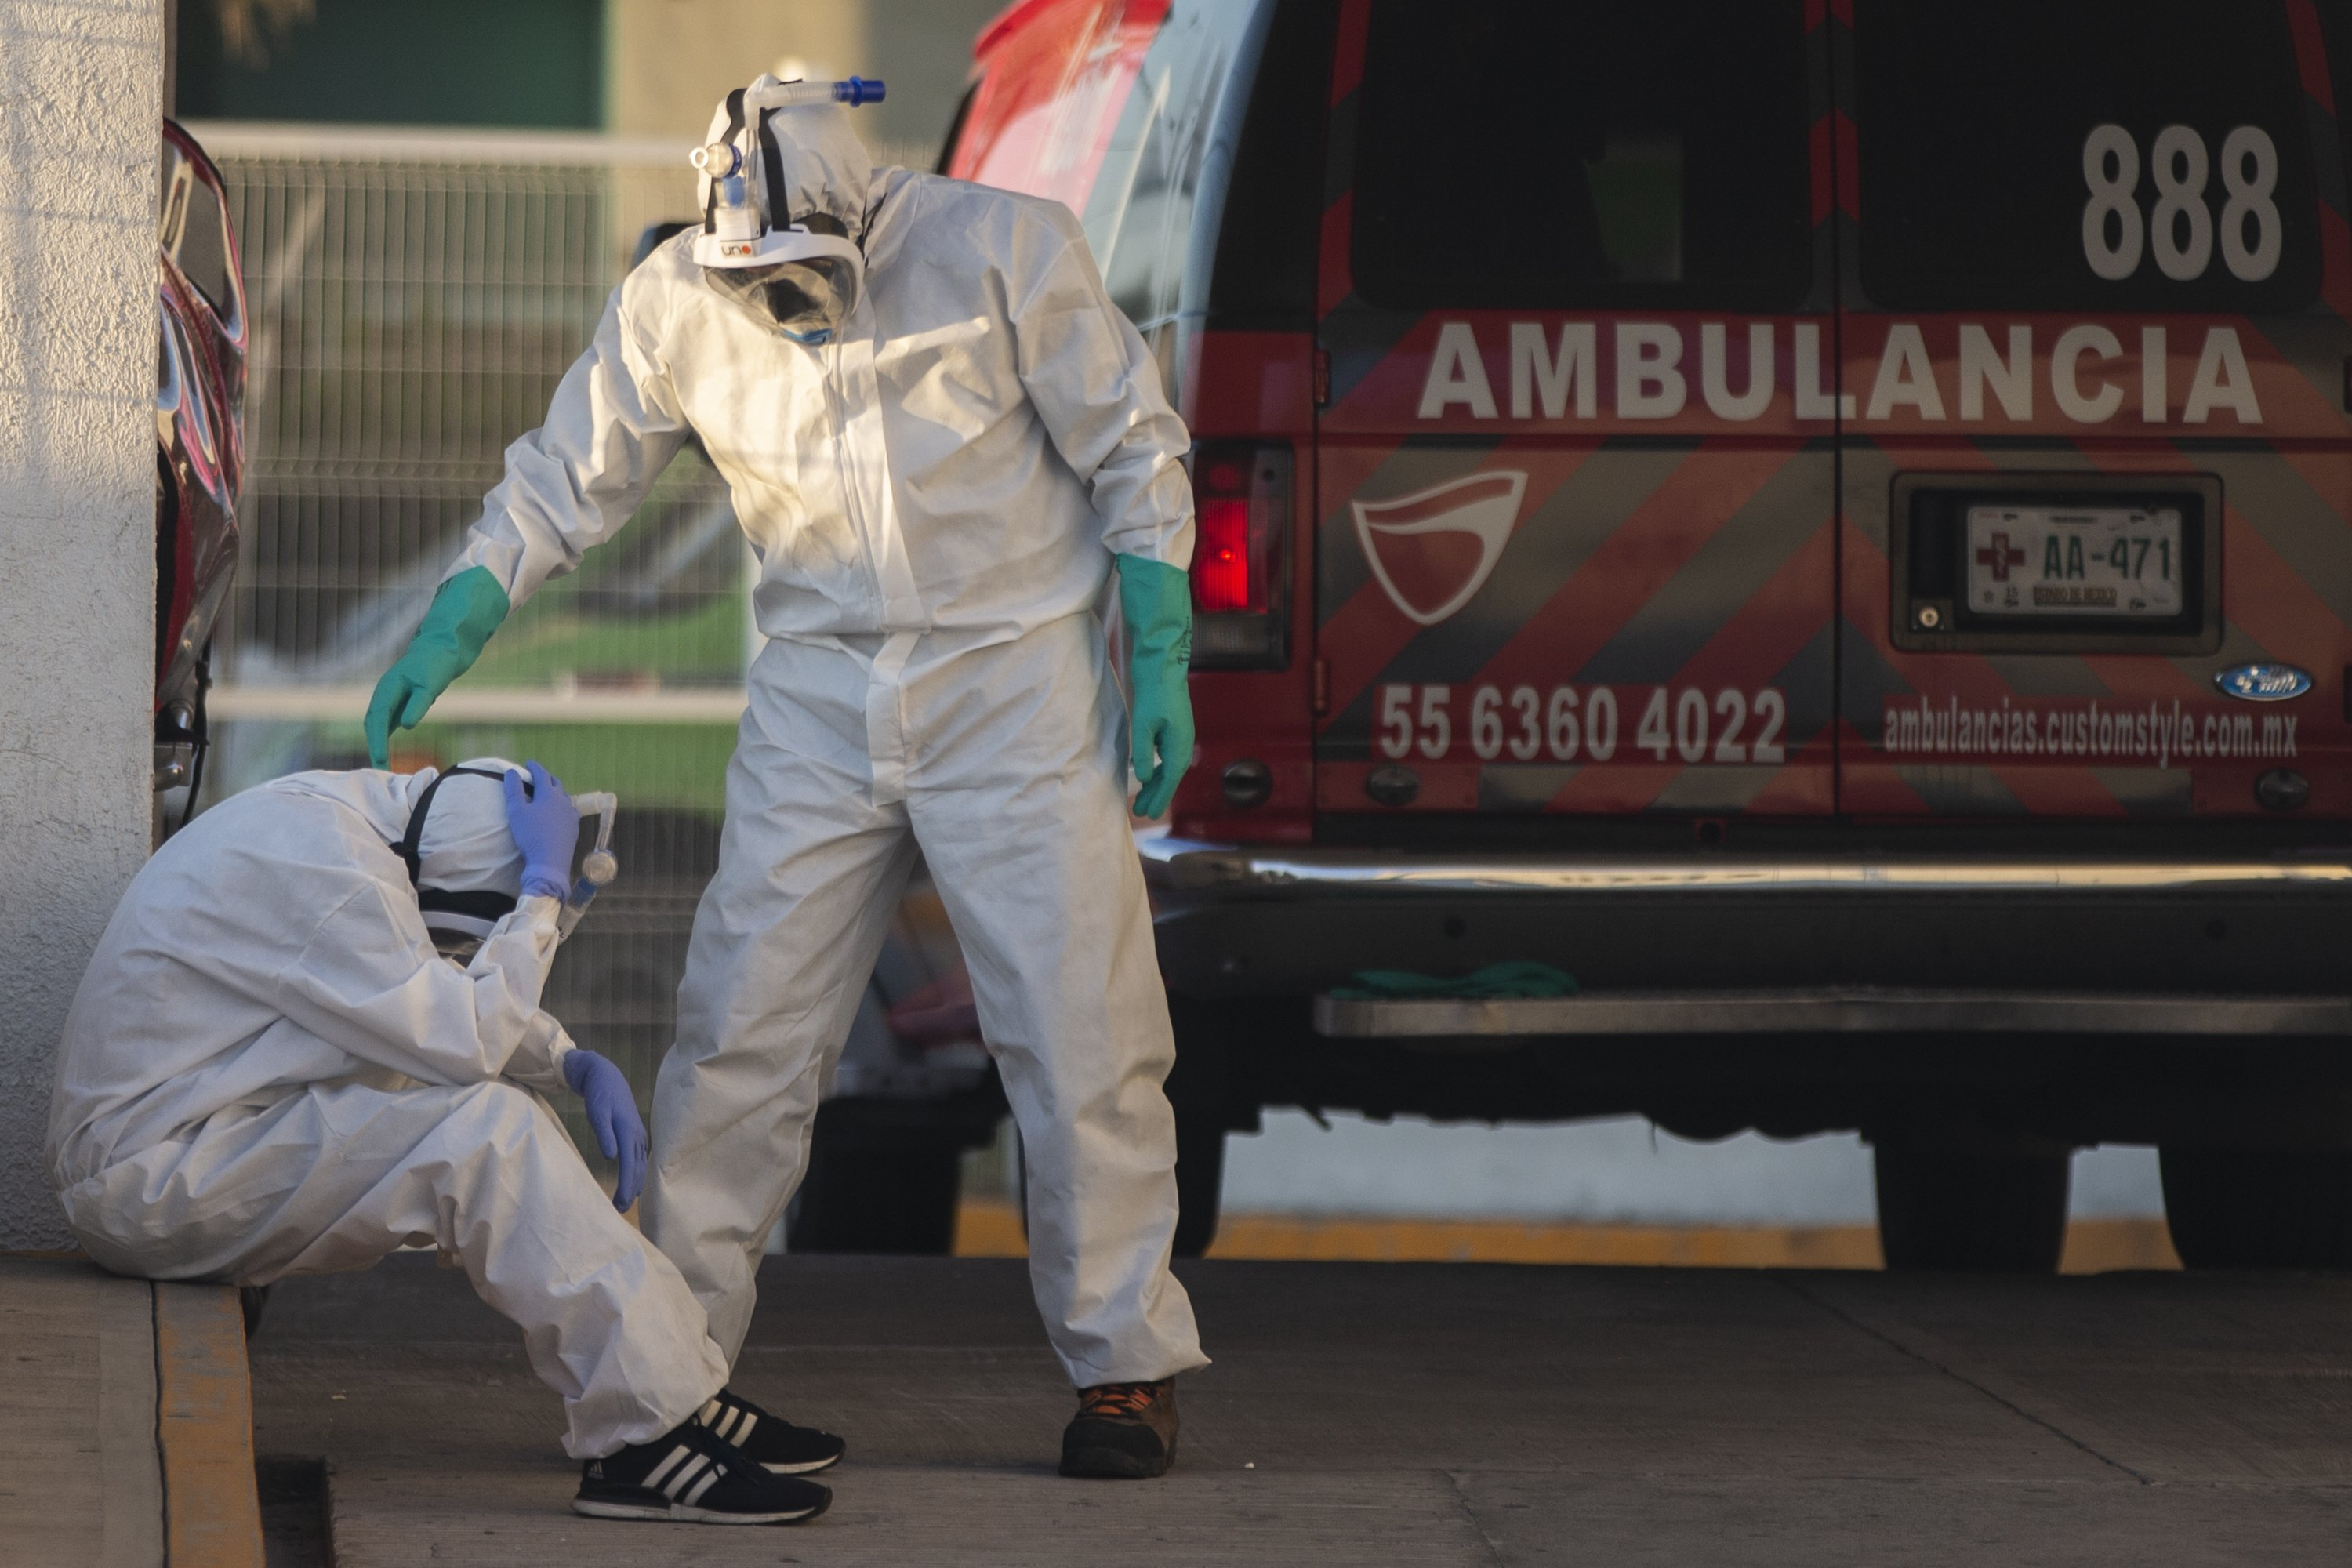 A paramedic puts his hands to his head while at the emergency entrance of the Hospital de las Américas in Ecatepec on May 2, 2020, in Mexico City, Mexico. | Source: Getty Images.